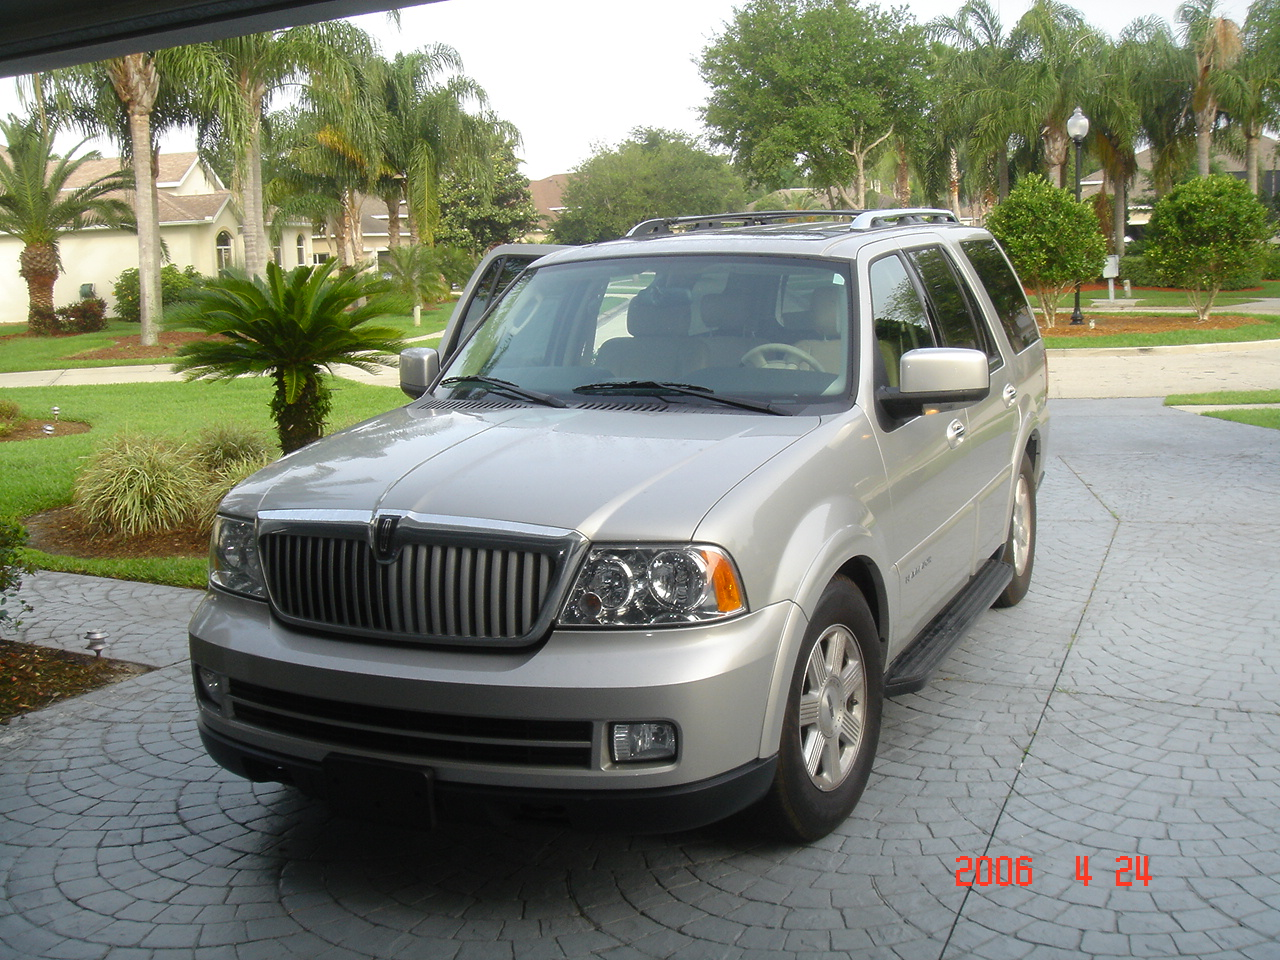 2005 lincoln navigator exterior pictures cargurus. Black Bedroom Furniture Sets. Home Design Ideas